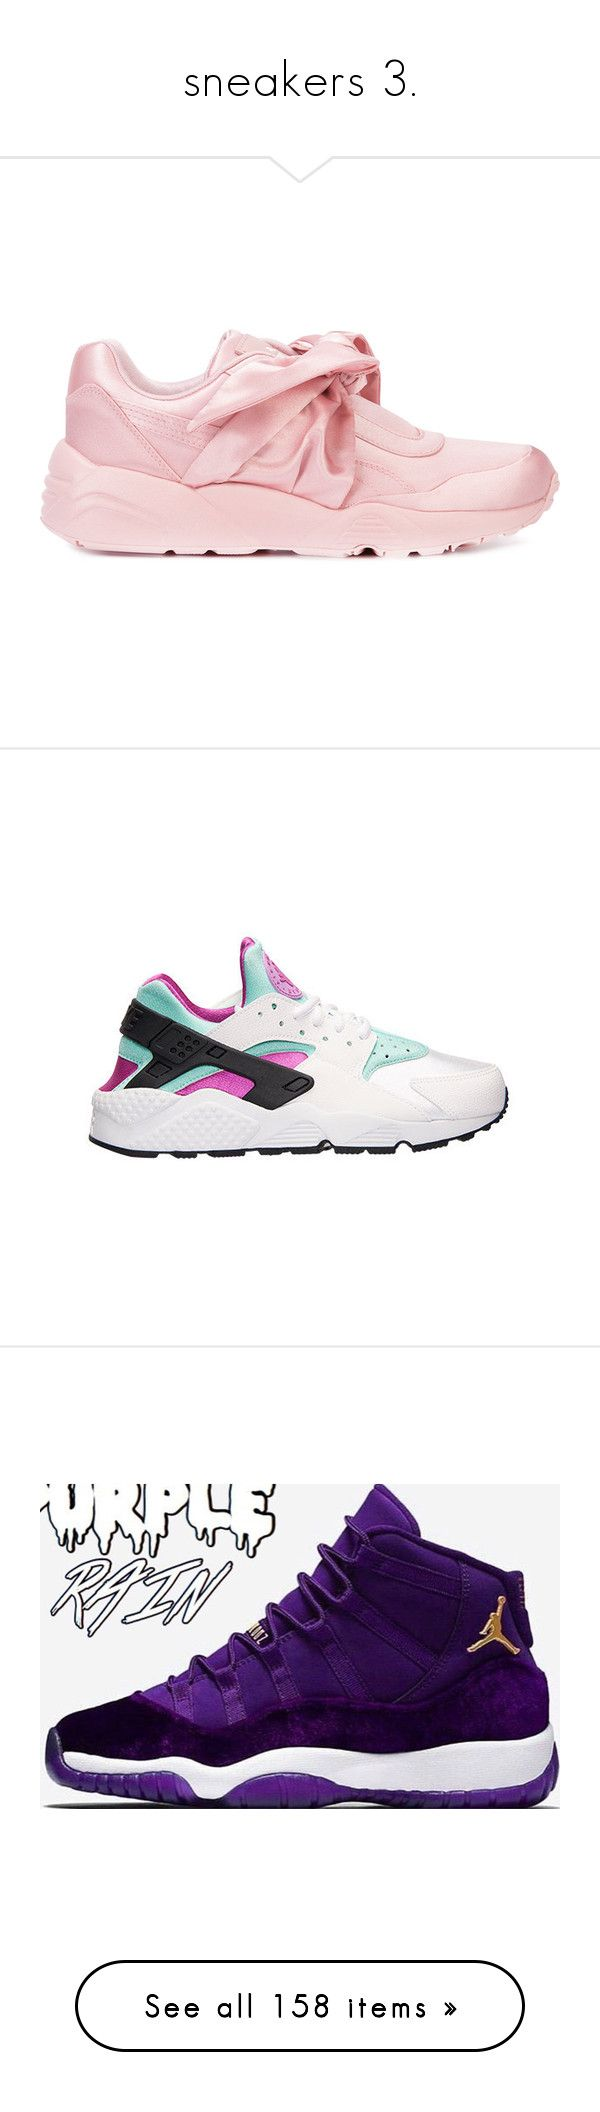 """""""sneakers 3."""" by yeauxbriana ❤ liked on Polyvore featuring shoes, sneakers, bow shoes, puma shoes, puma footwear, puma trainers, puma sneakers, black gold sneakers, nike and nike sneakers"""